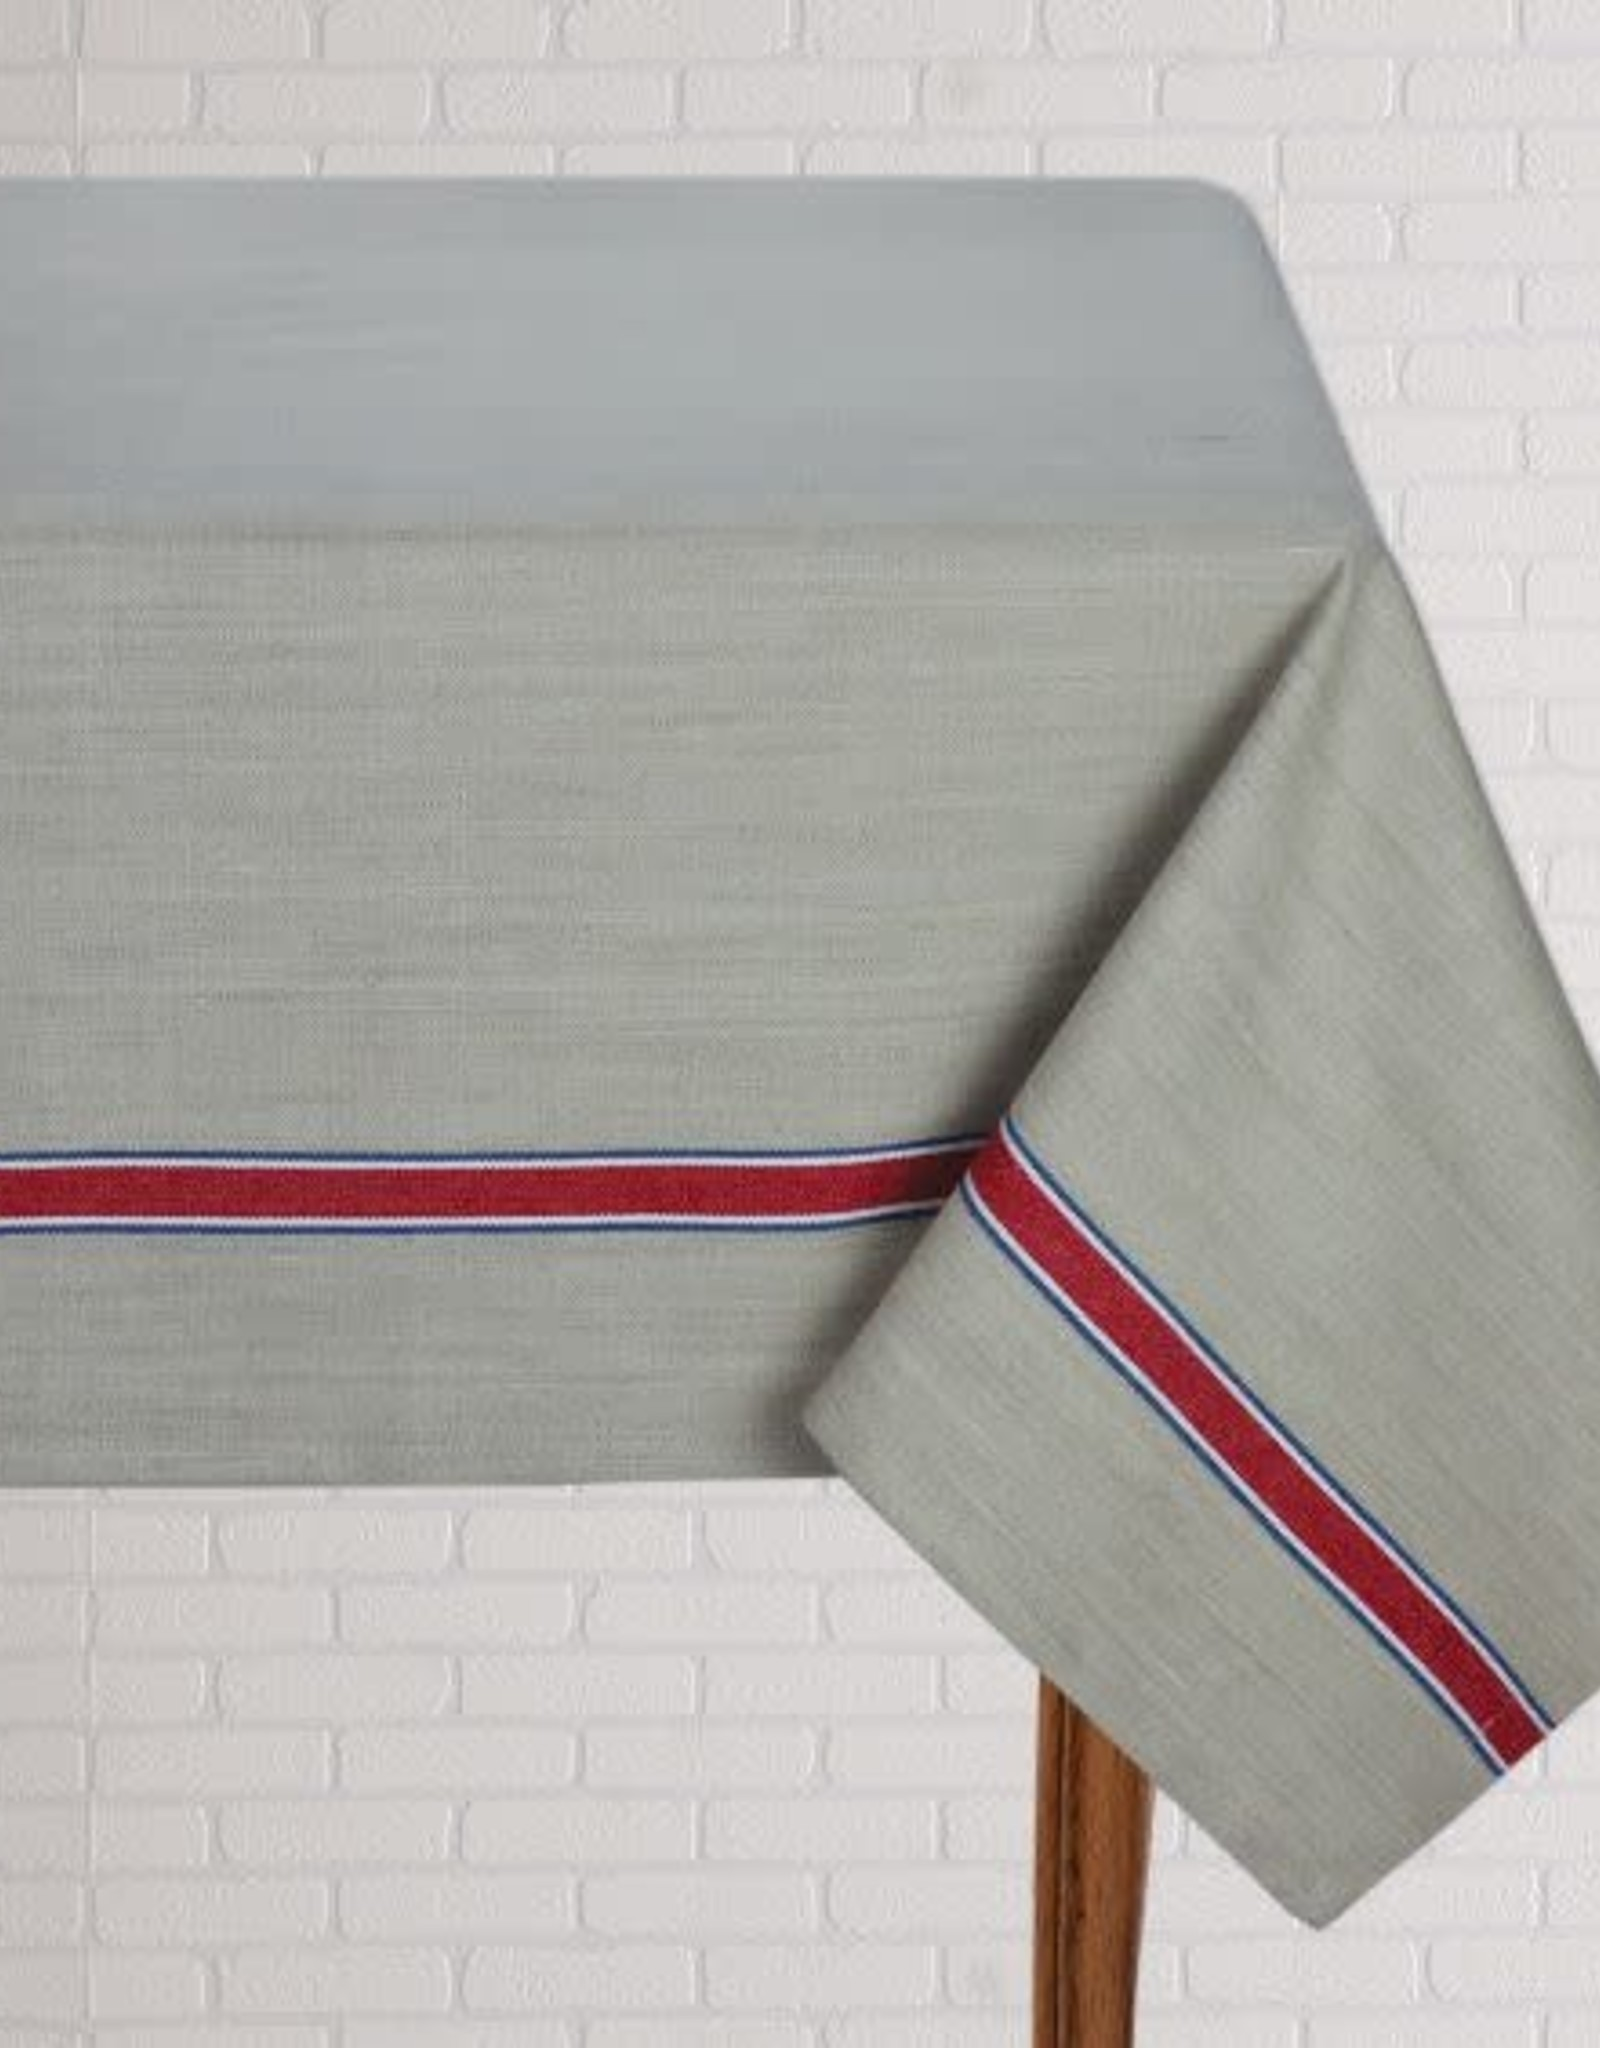 TABLECLOTH FRENCH LAUNDRY RED 60 X 90